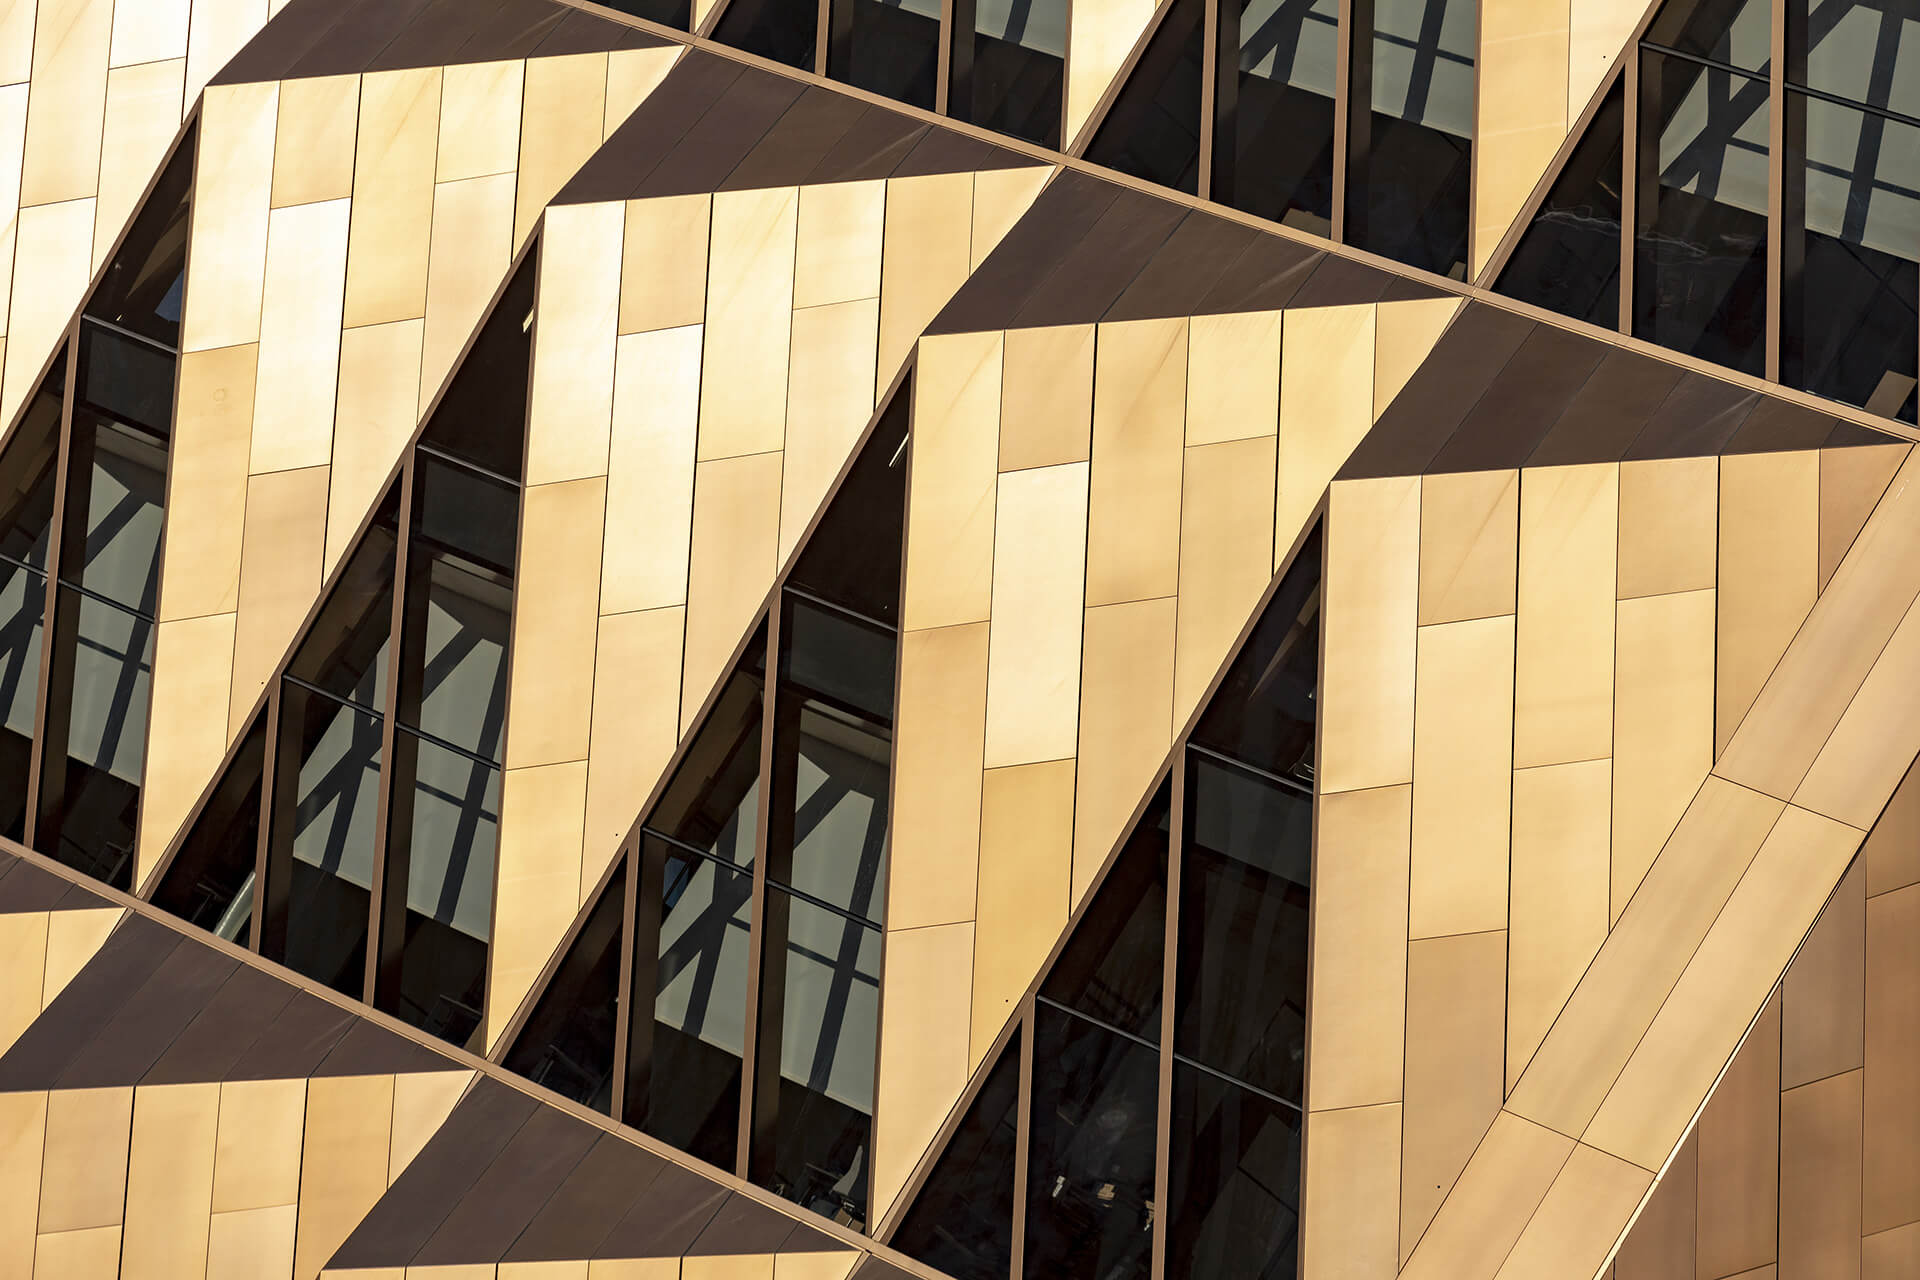 The building's unitised facade scheme combines triple-glazed sections with triangular elements inspired by the crystalline lattice structure of copper | RCC Headquarters by Foster + Partners | STIRworld